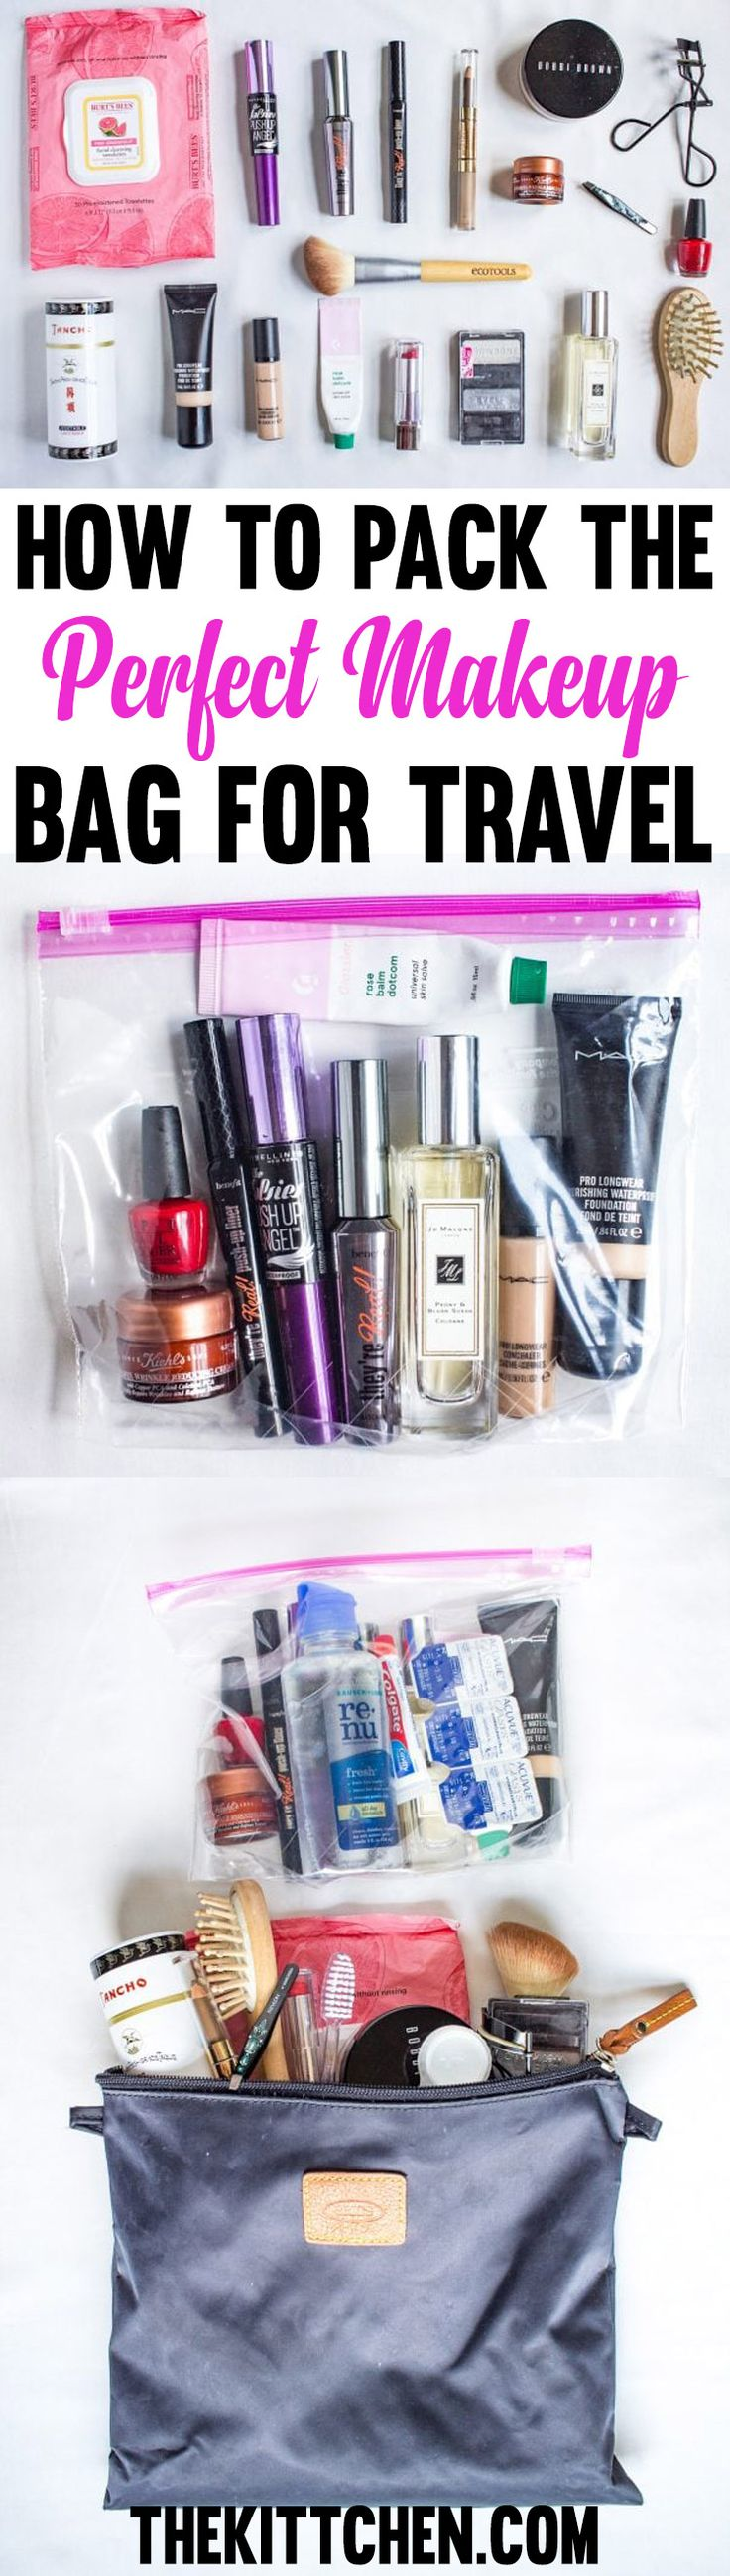 Have no idea what make up to bring on your upcoming trip? I share the details of what's in my make up bag plus how I pack it in a travel friendly way.  ***************************************** Travel tips and tricks | Travel tips packing | Travel tips international | Packing tips for vacation | Travel makeup bag | Travel makeup essentials | Travel makeup bag essentials